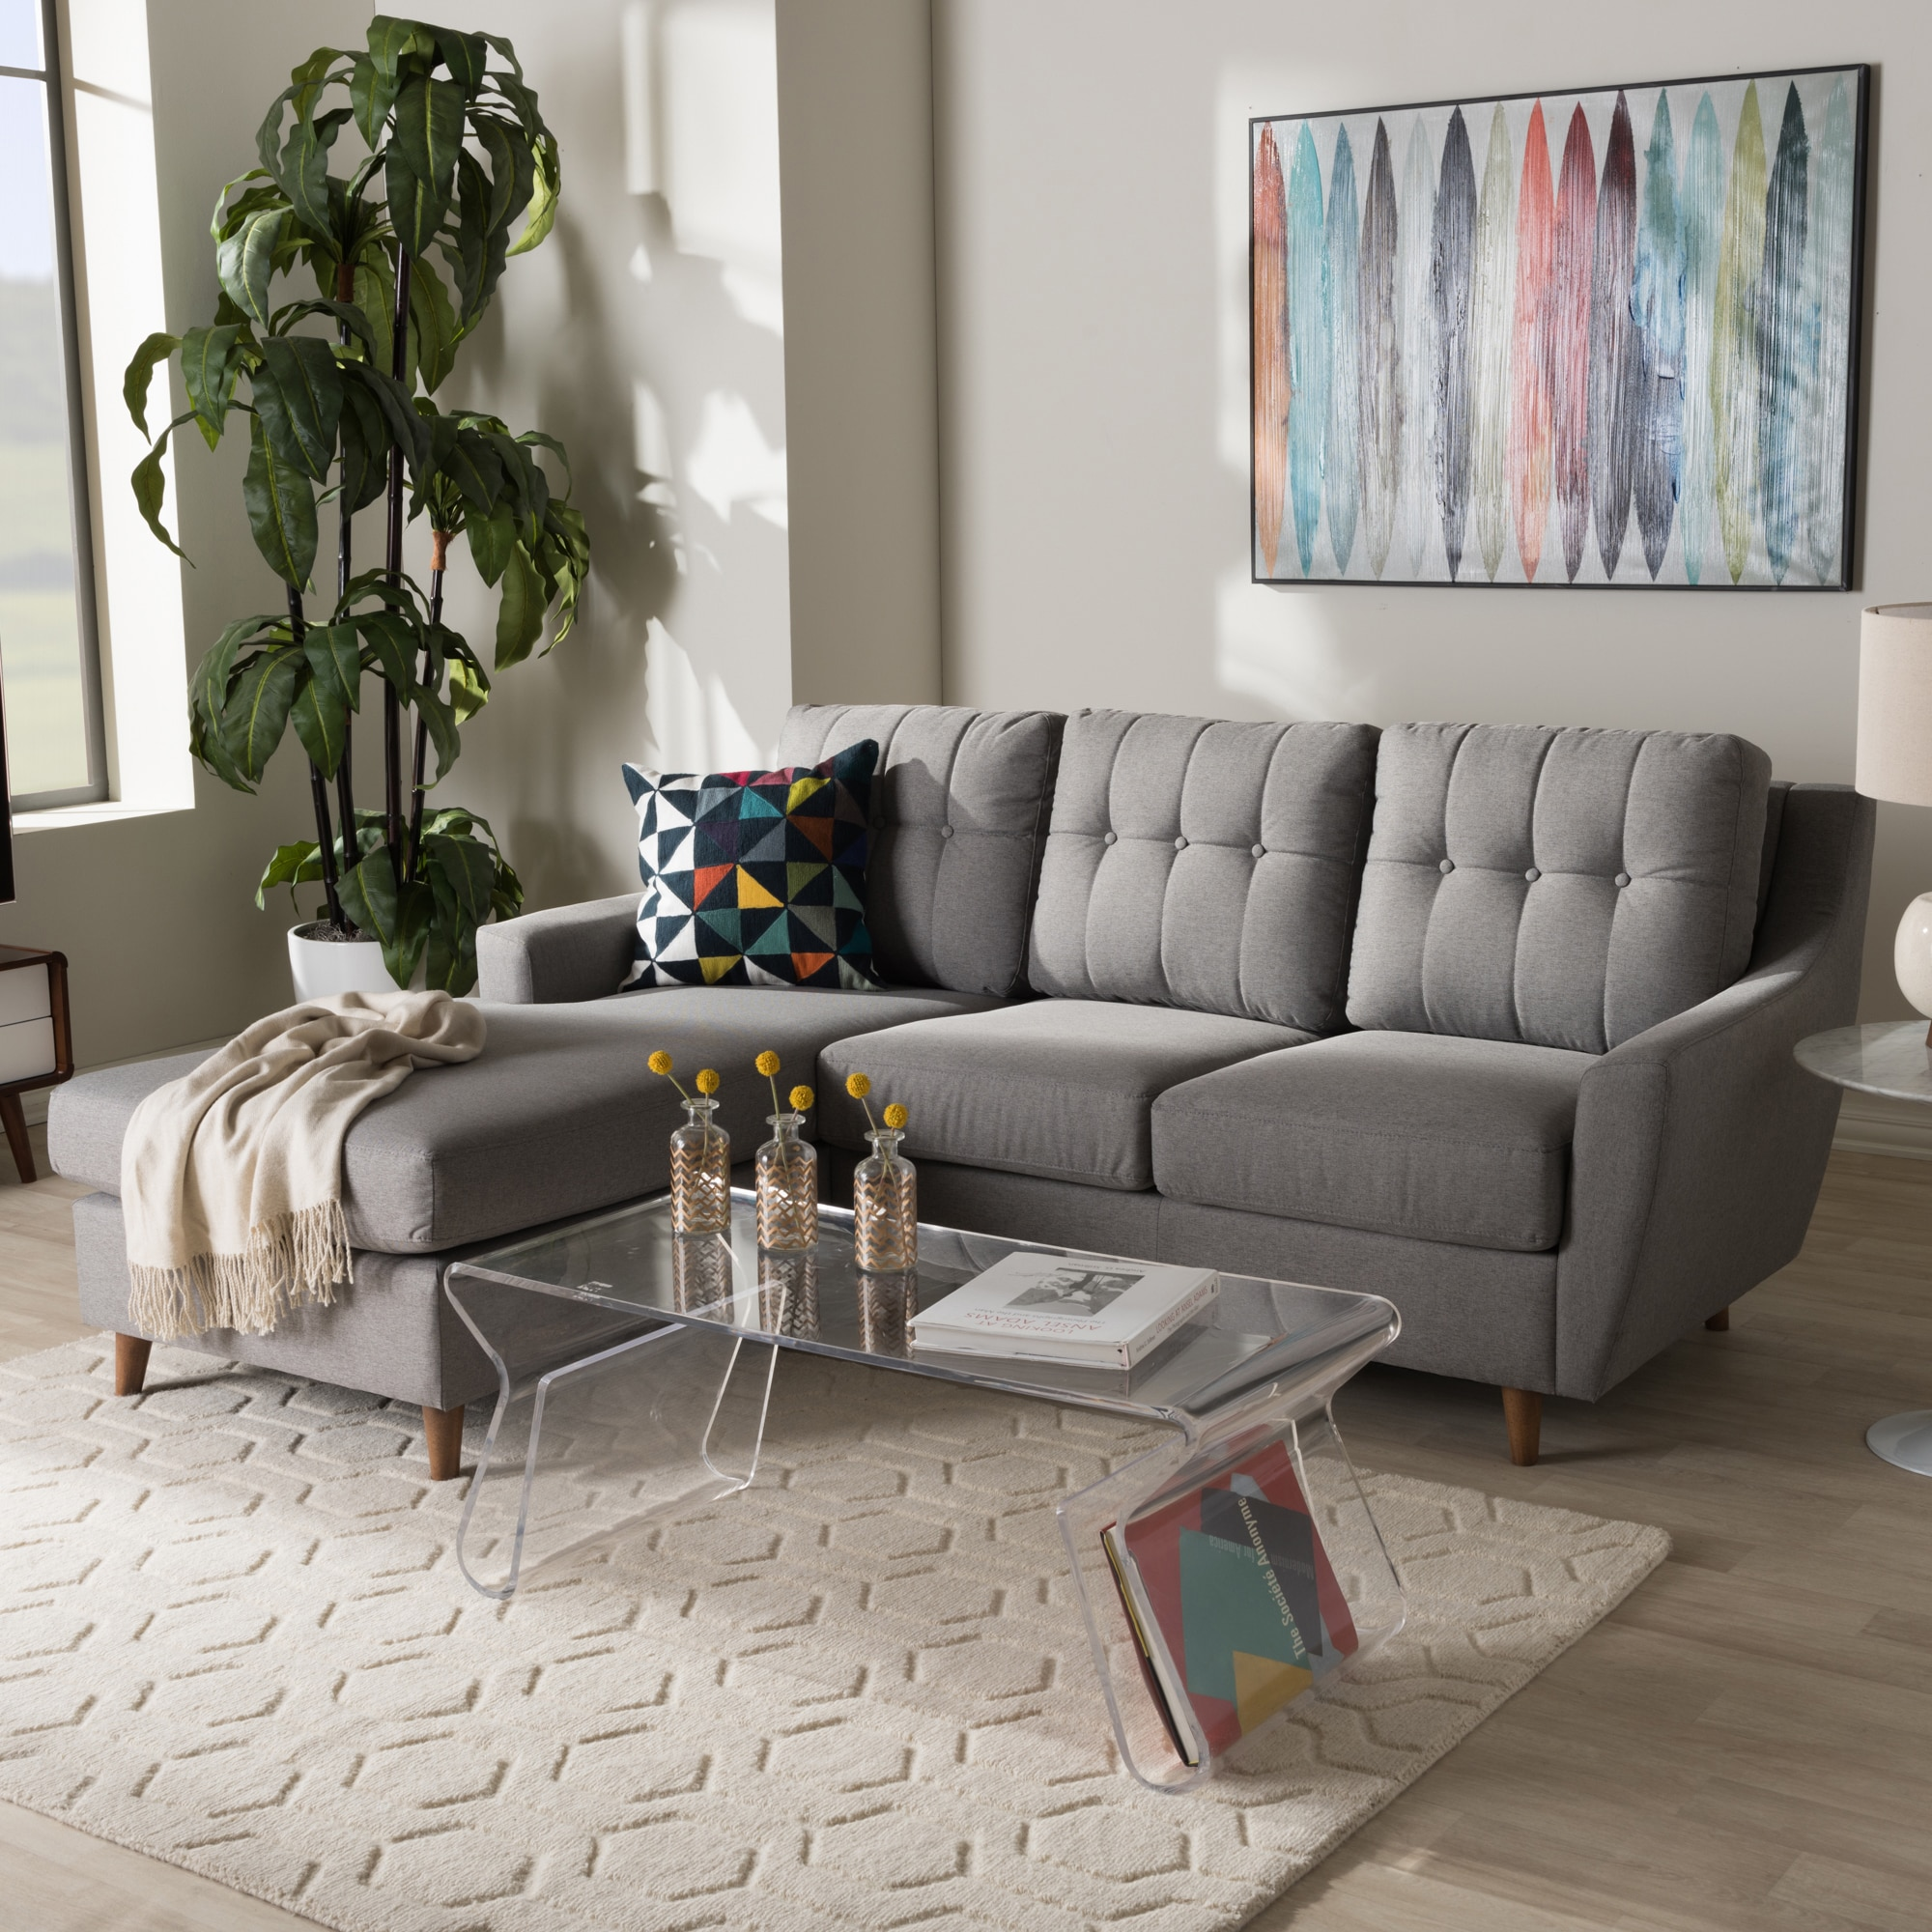 Outstanding Mid Century Fabric 2 Piece Sectional Sofa By Baxton Studio Camellatalisay Diy Chair Ideas Camellatalisaycom